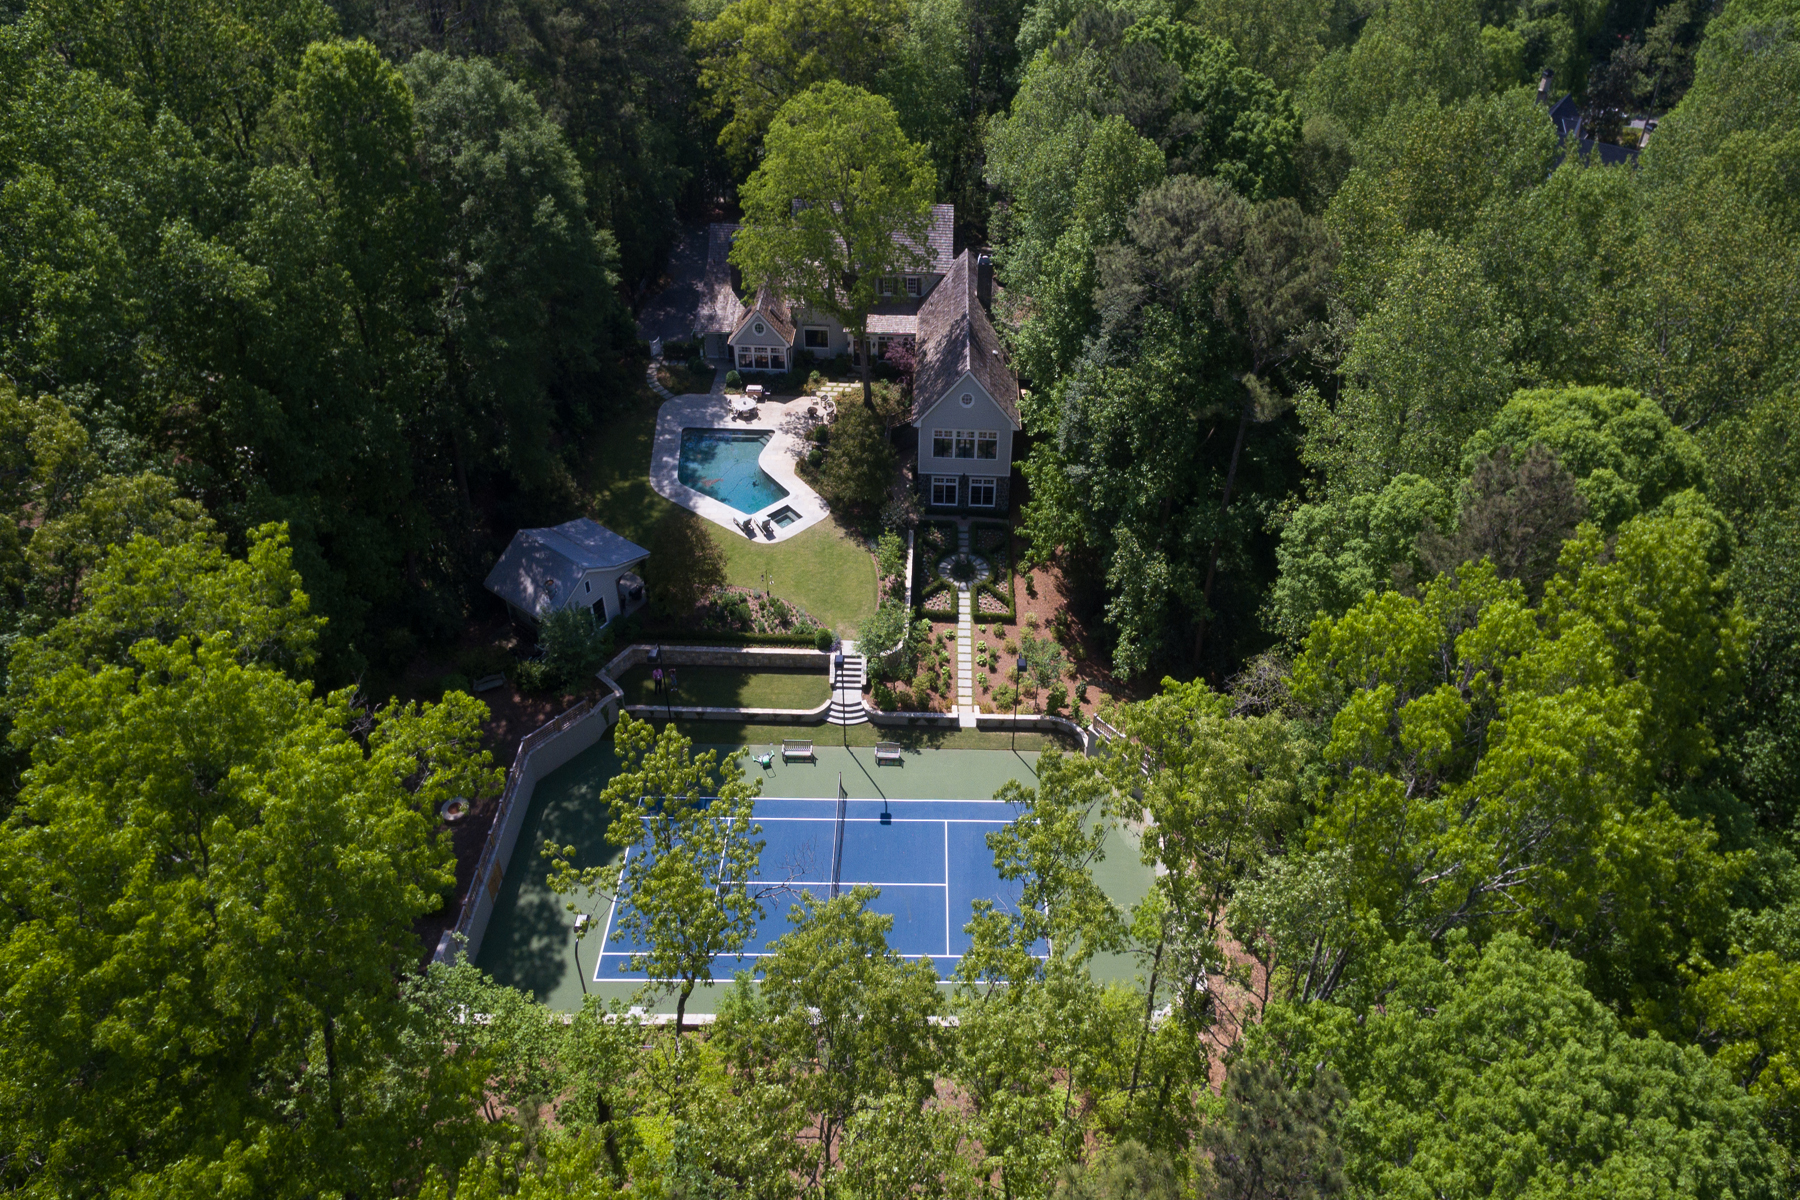 단독 가정 주택 용 매매 에 Amazing 4.86 Acre Estate Property With Lighted Tennis Court And Pool 4000 Conway Valley Road NW Buckhead, Atlanta, 조지아, 30327 미국